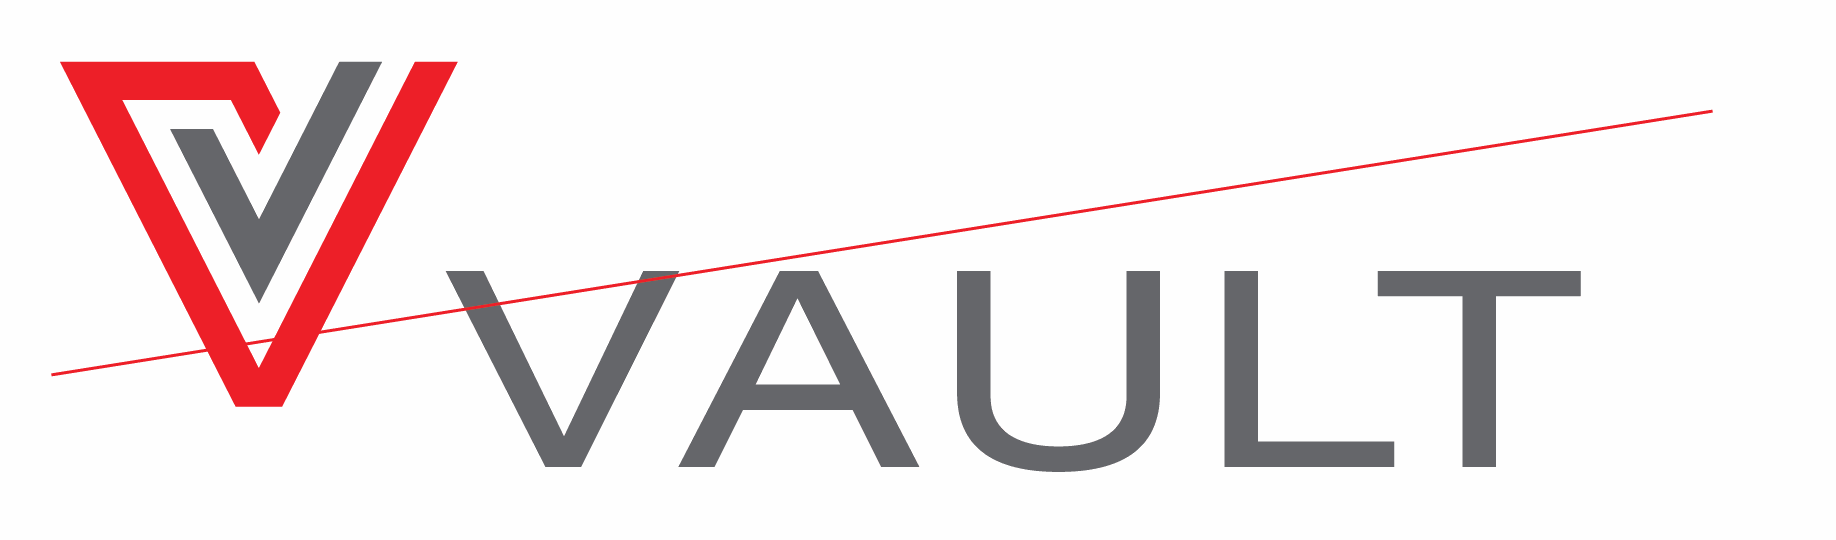 Vault logo misuse of orientation